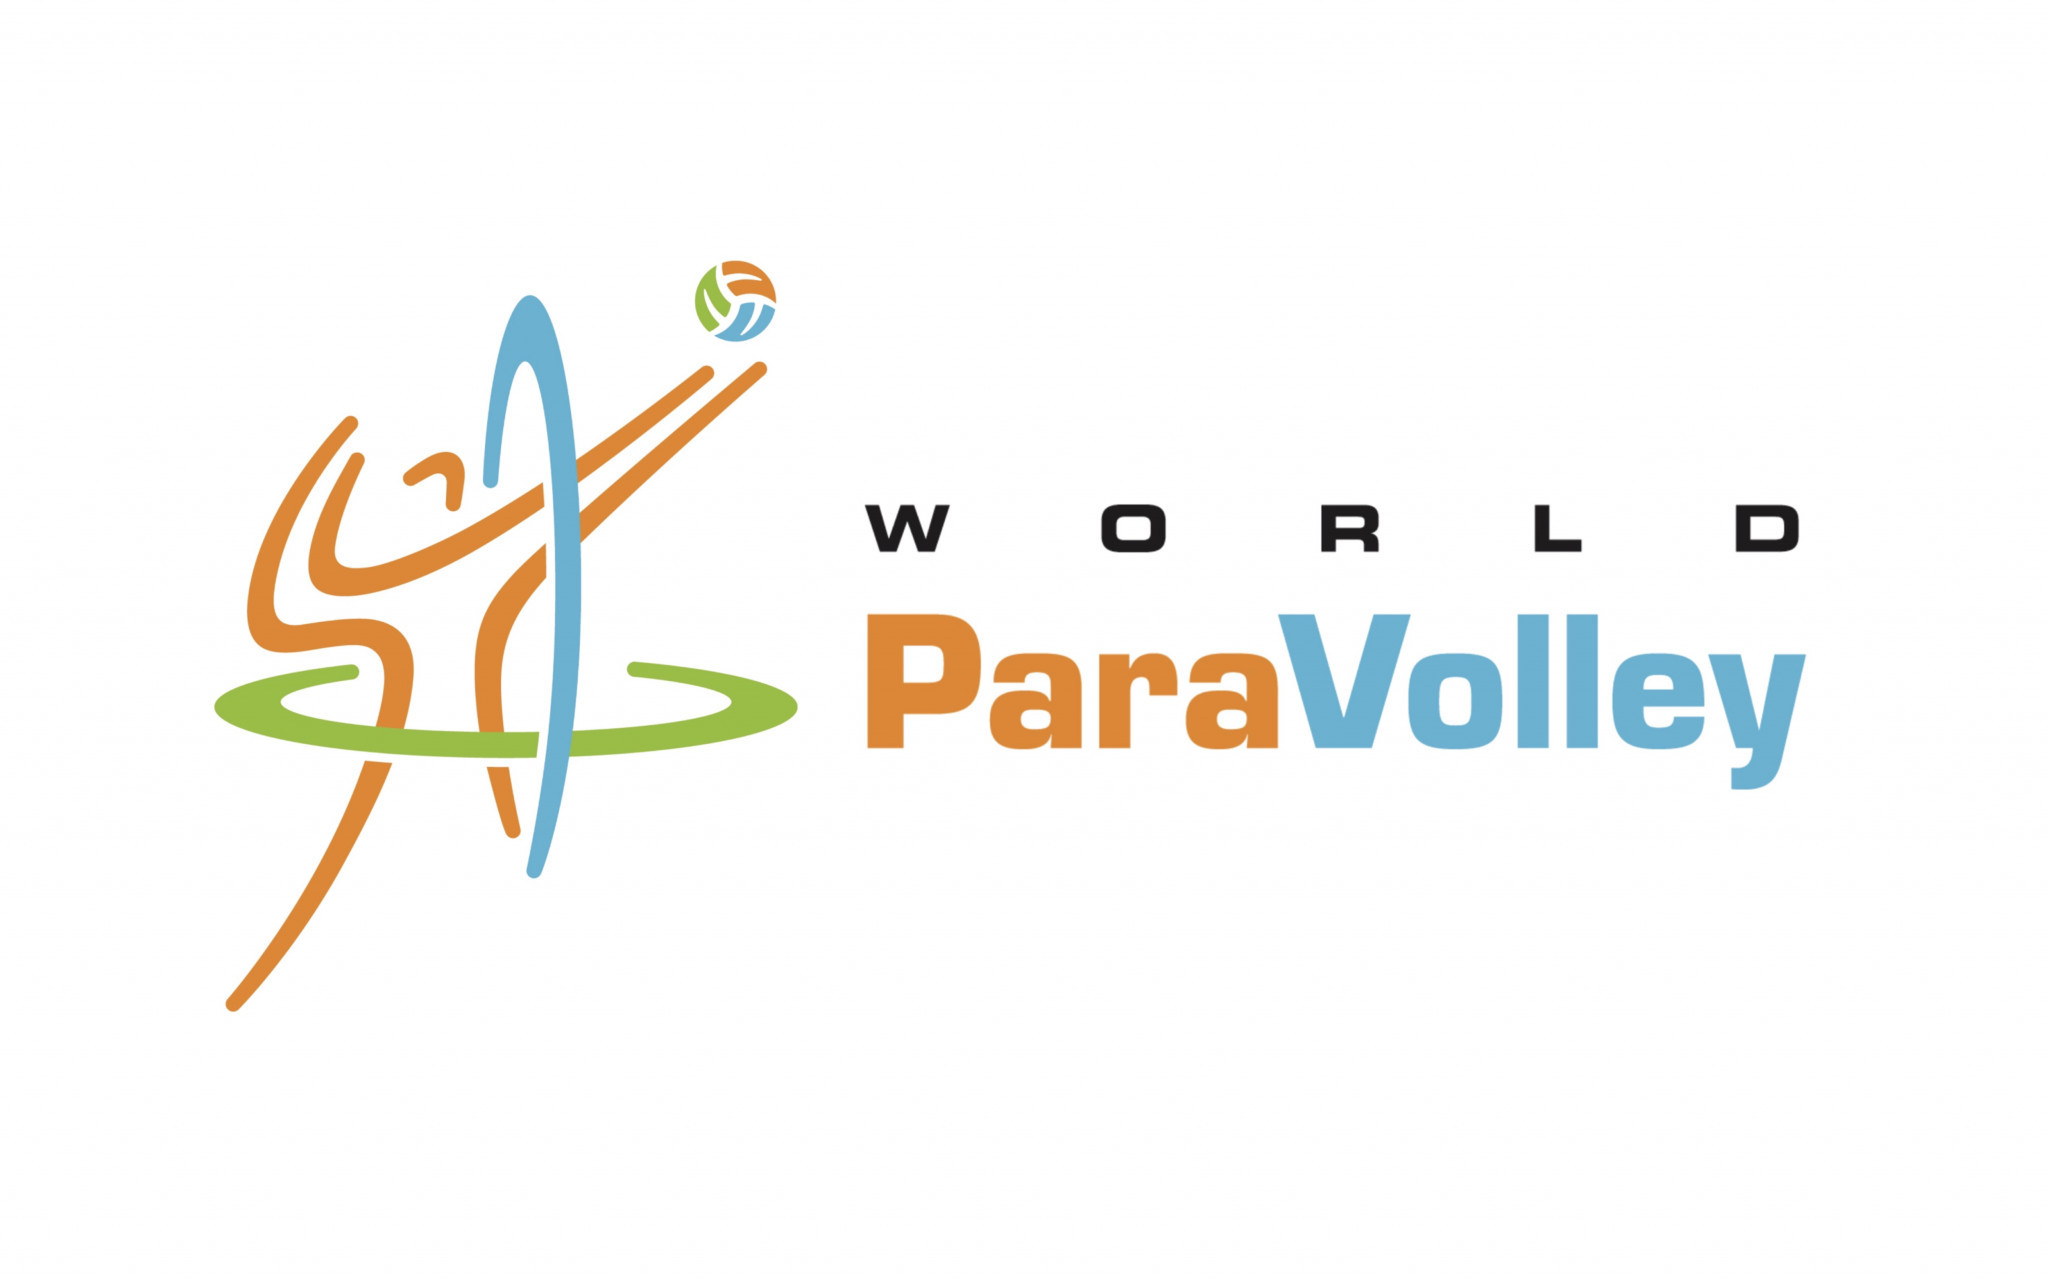 Final Tokyo 2020 men's sitting volleyball qualifier cancelled by World ParaVolley